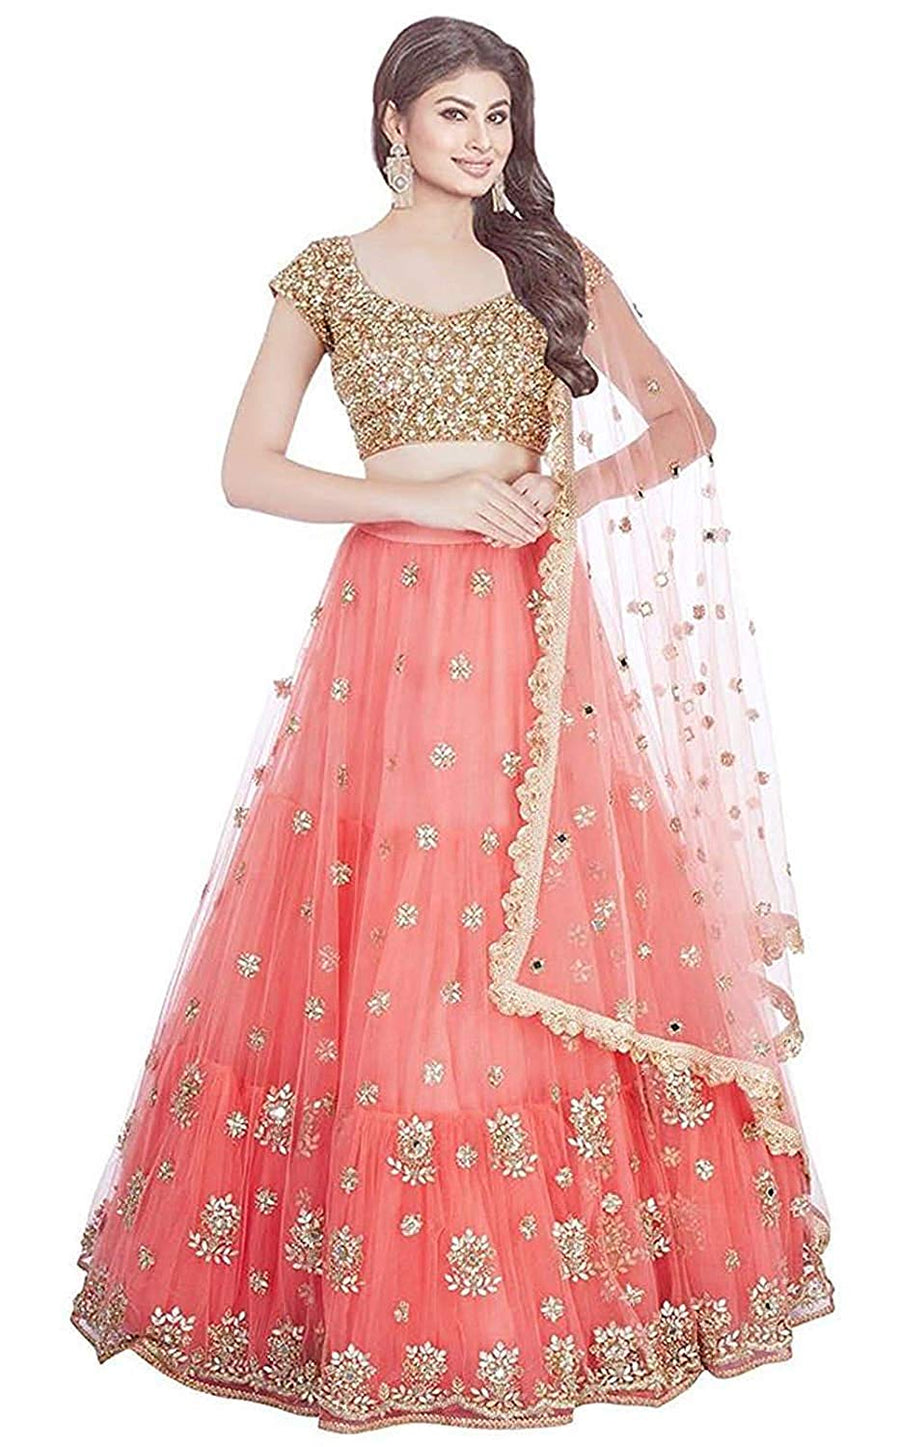 2eb6c161d7a Silk Fabric Beautiful Indian Style Unique Gajari Pink - Golden Colored  Lehenga Choli With Dupatta - LC220